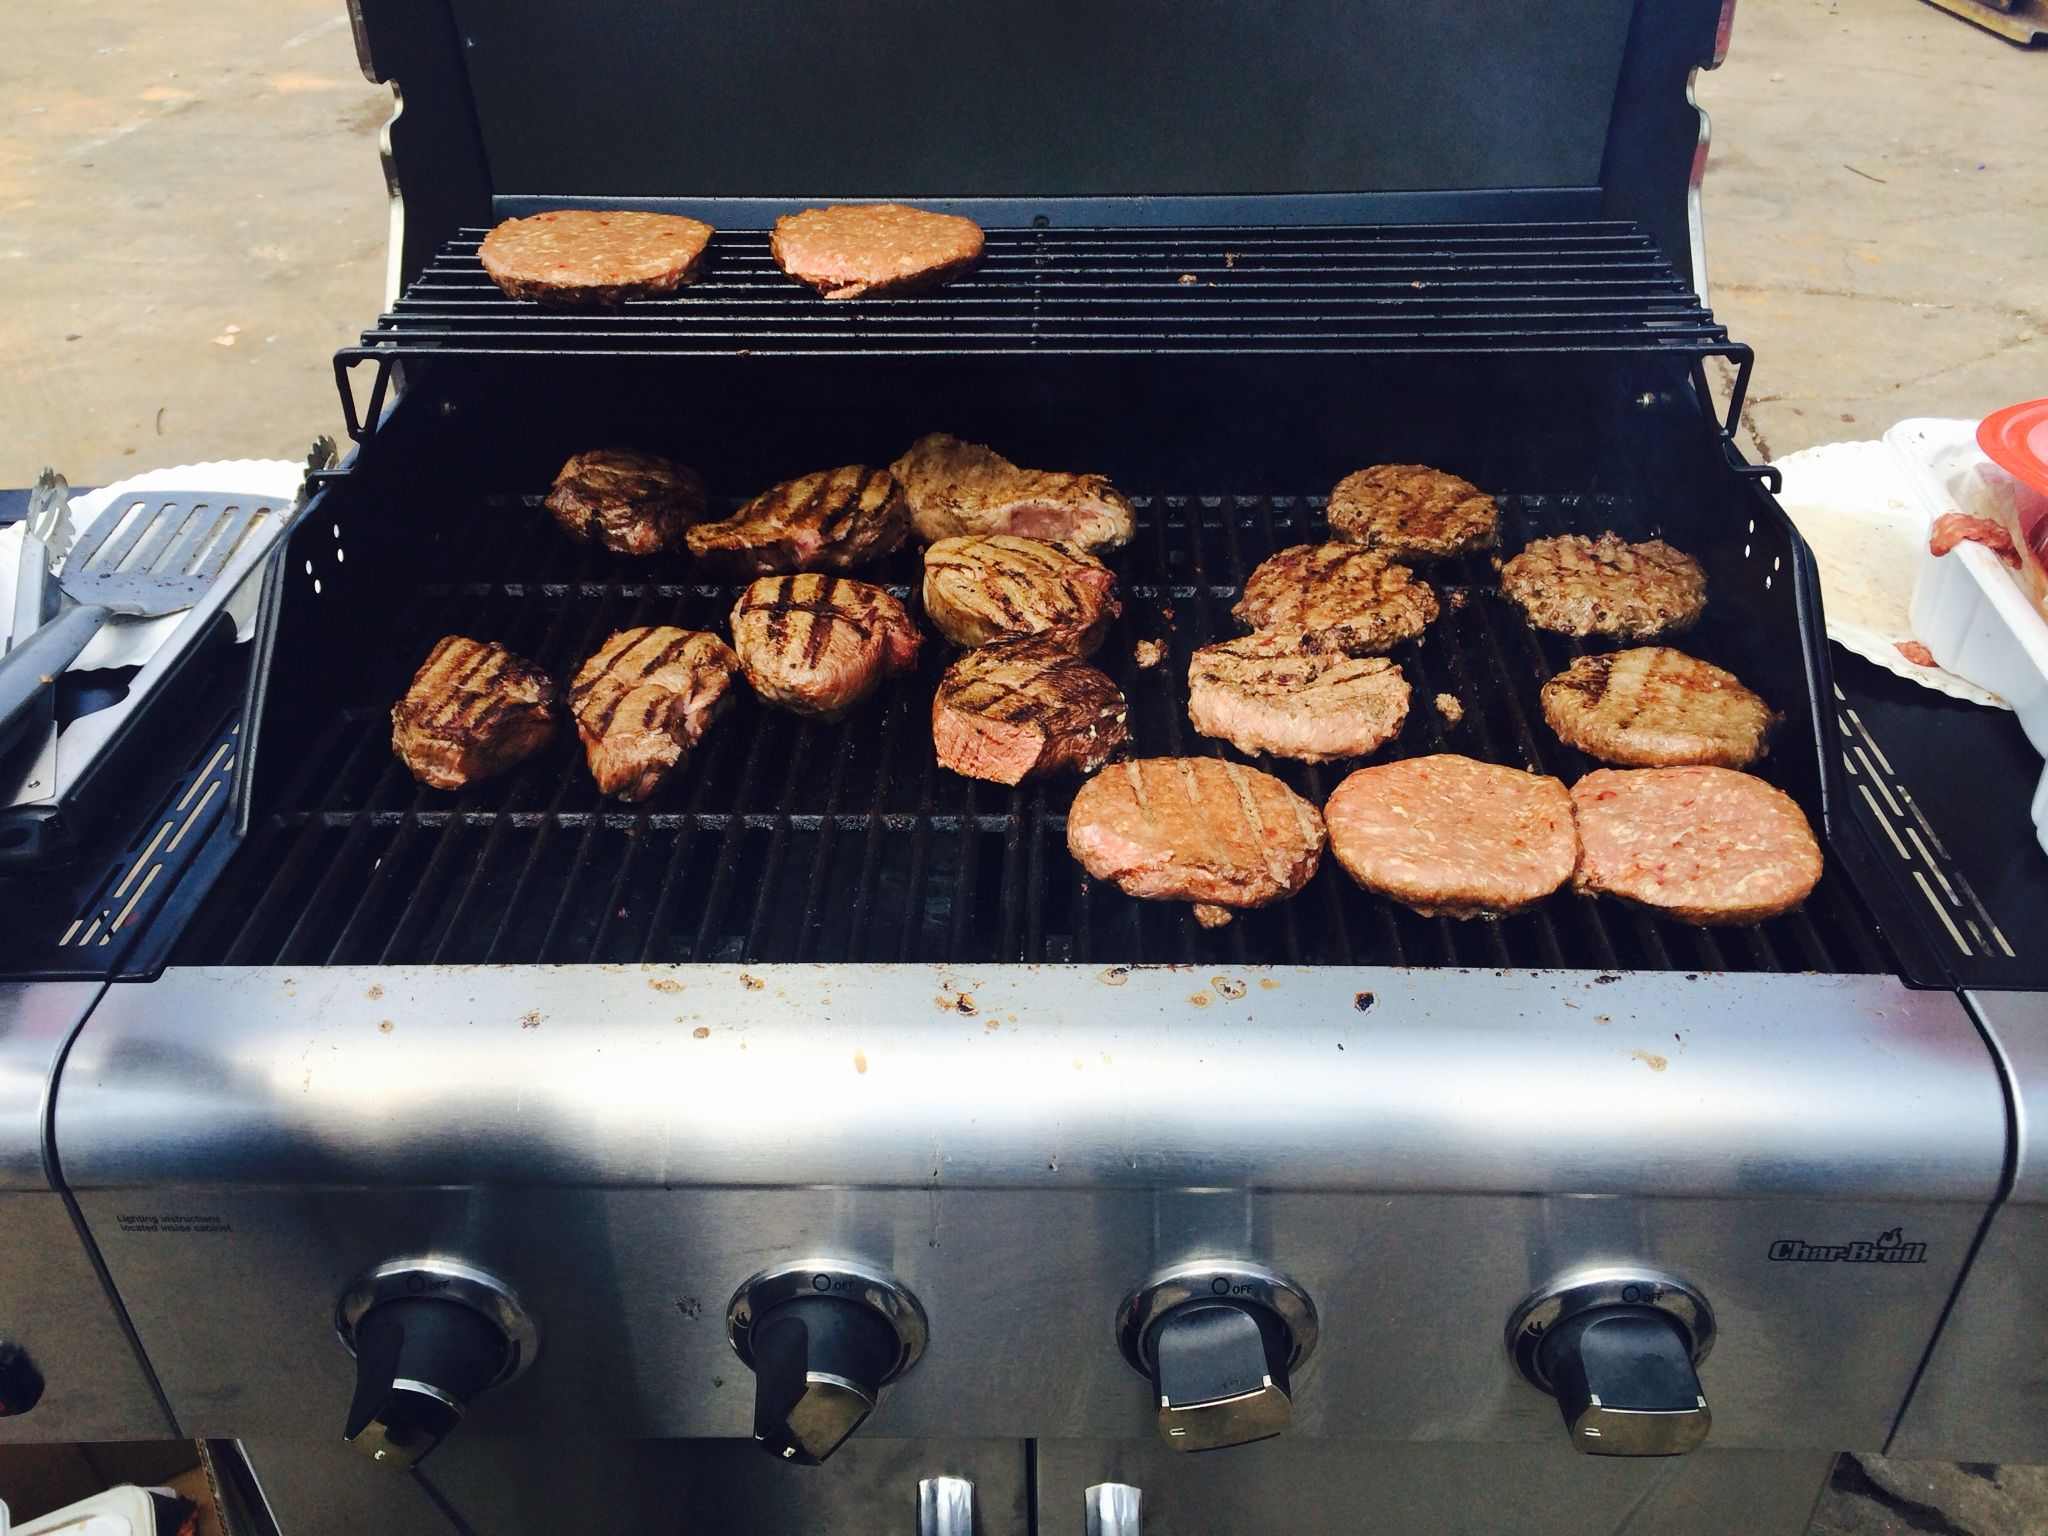 Burgers and steaks on the grill. Dan Jape reliable heating